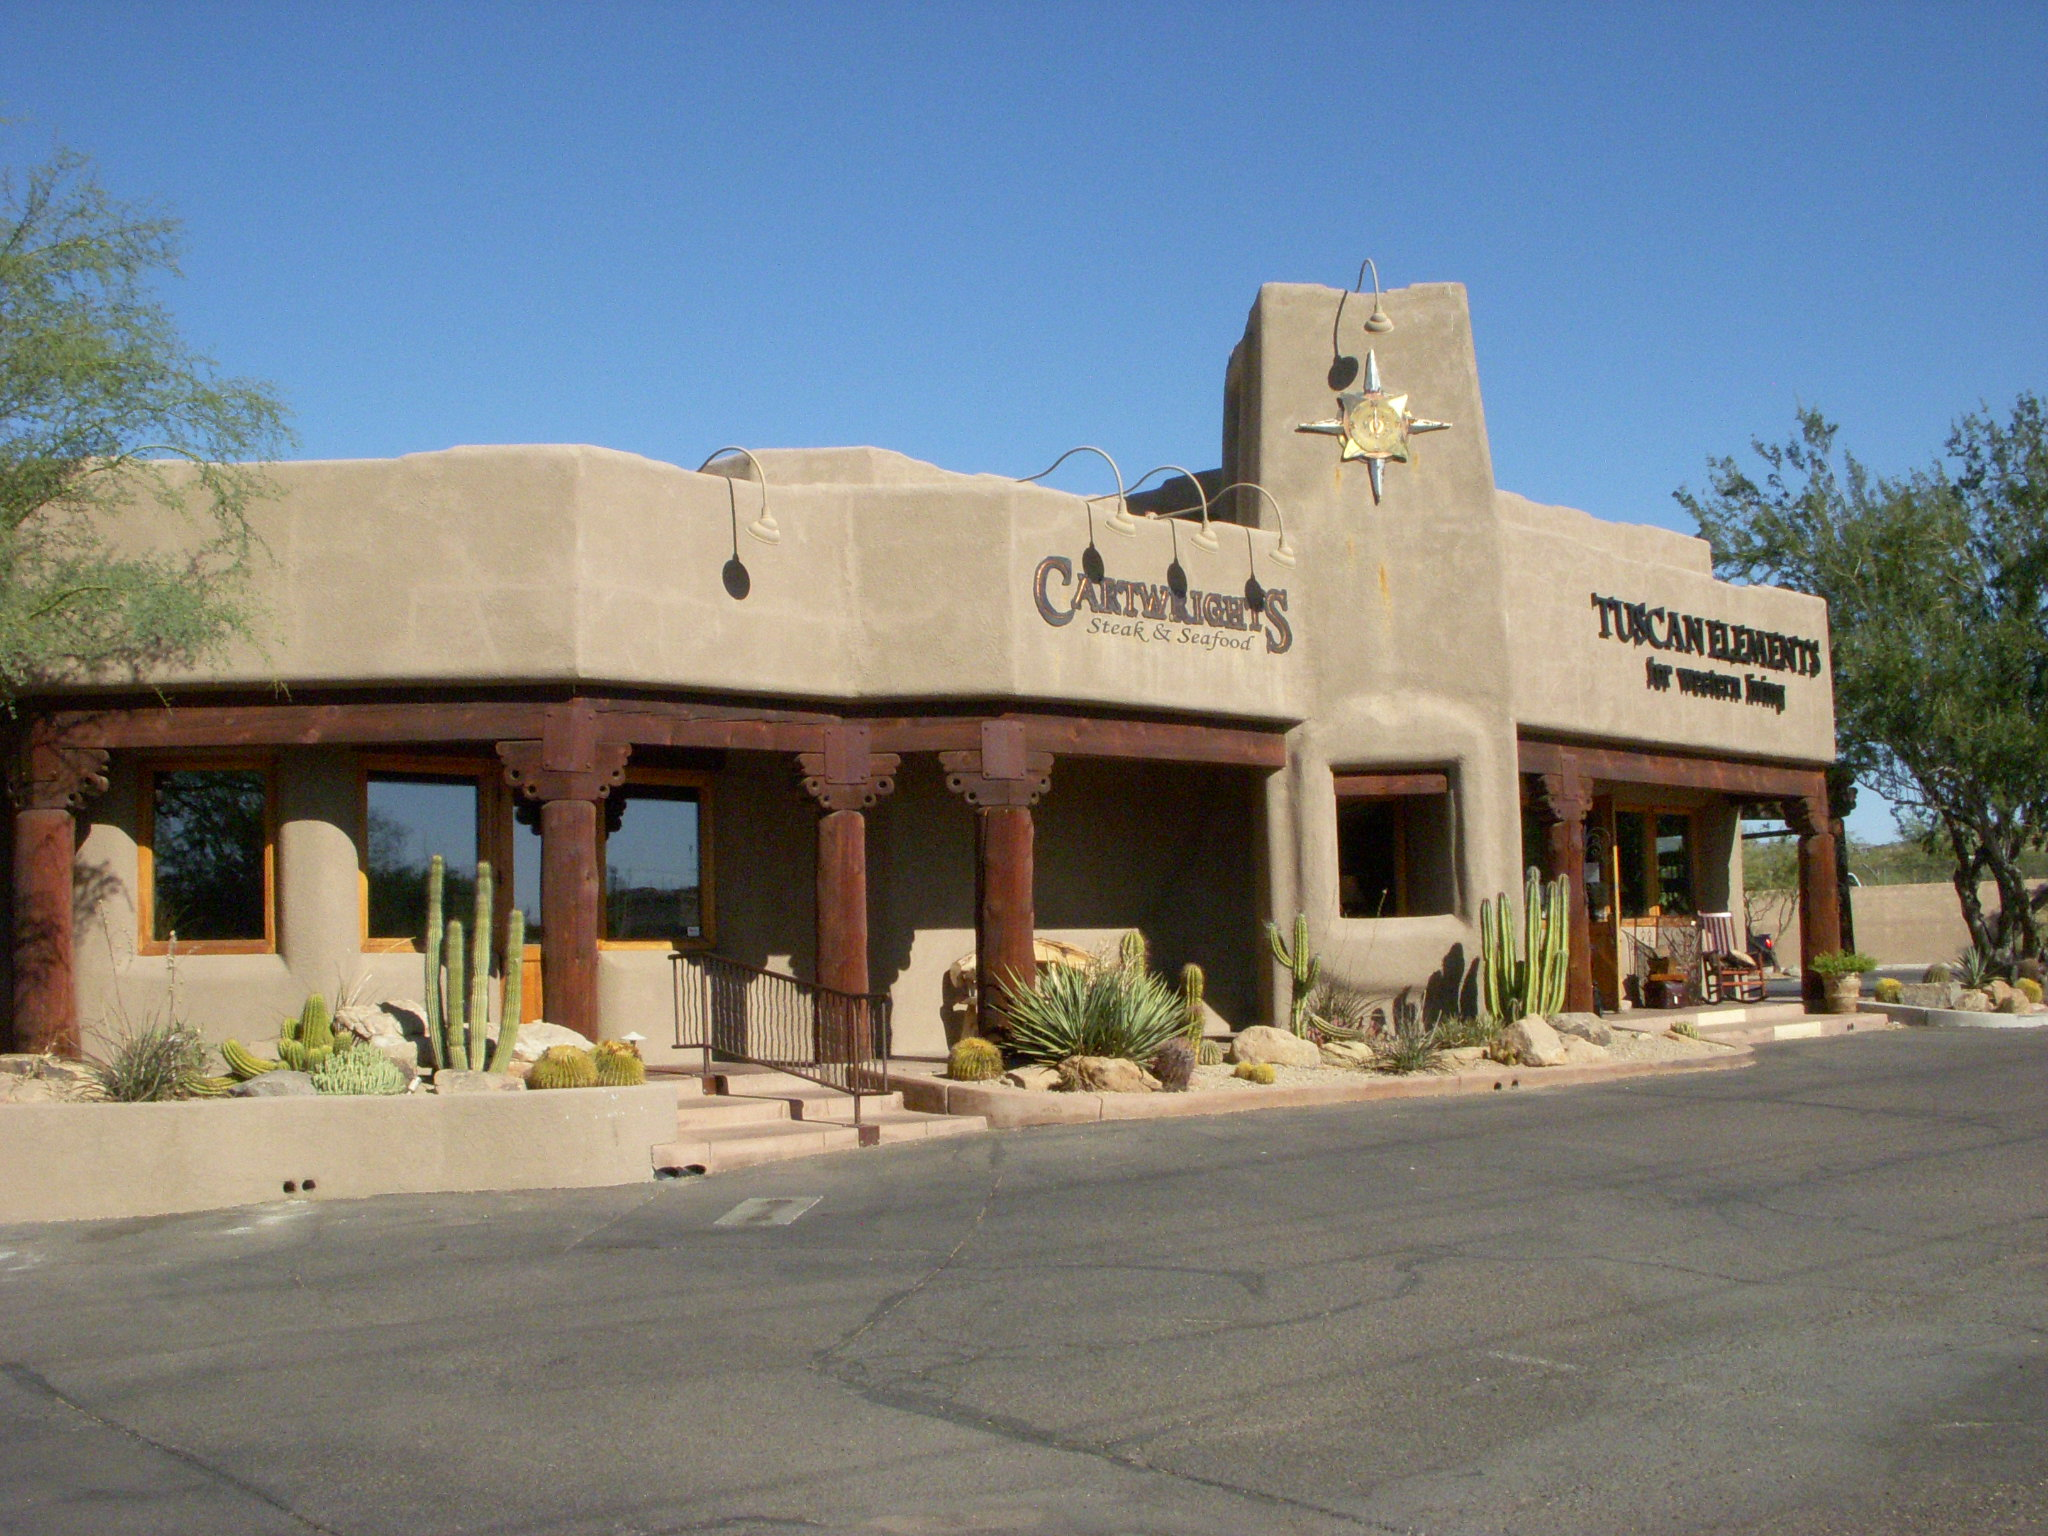 An outside view of Cartwright's Restaurant's beige Spanish-style building with cacti in front.